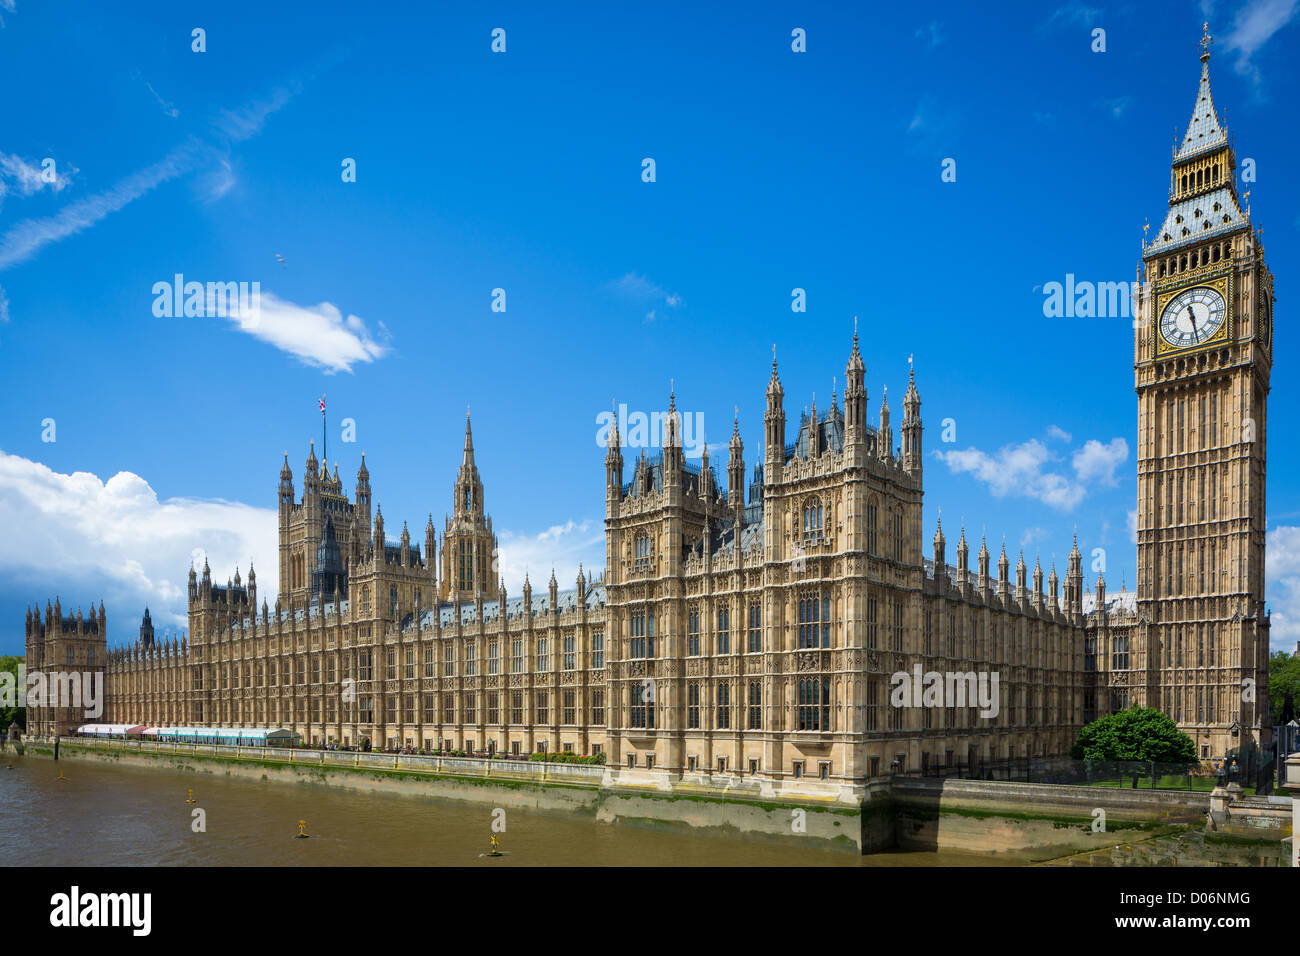 Palace of Westminster, or Houses of Parliament, in London, United Kingdom - Stock Image